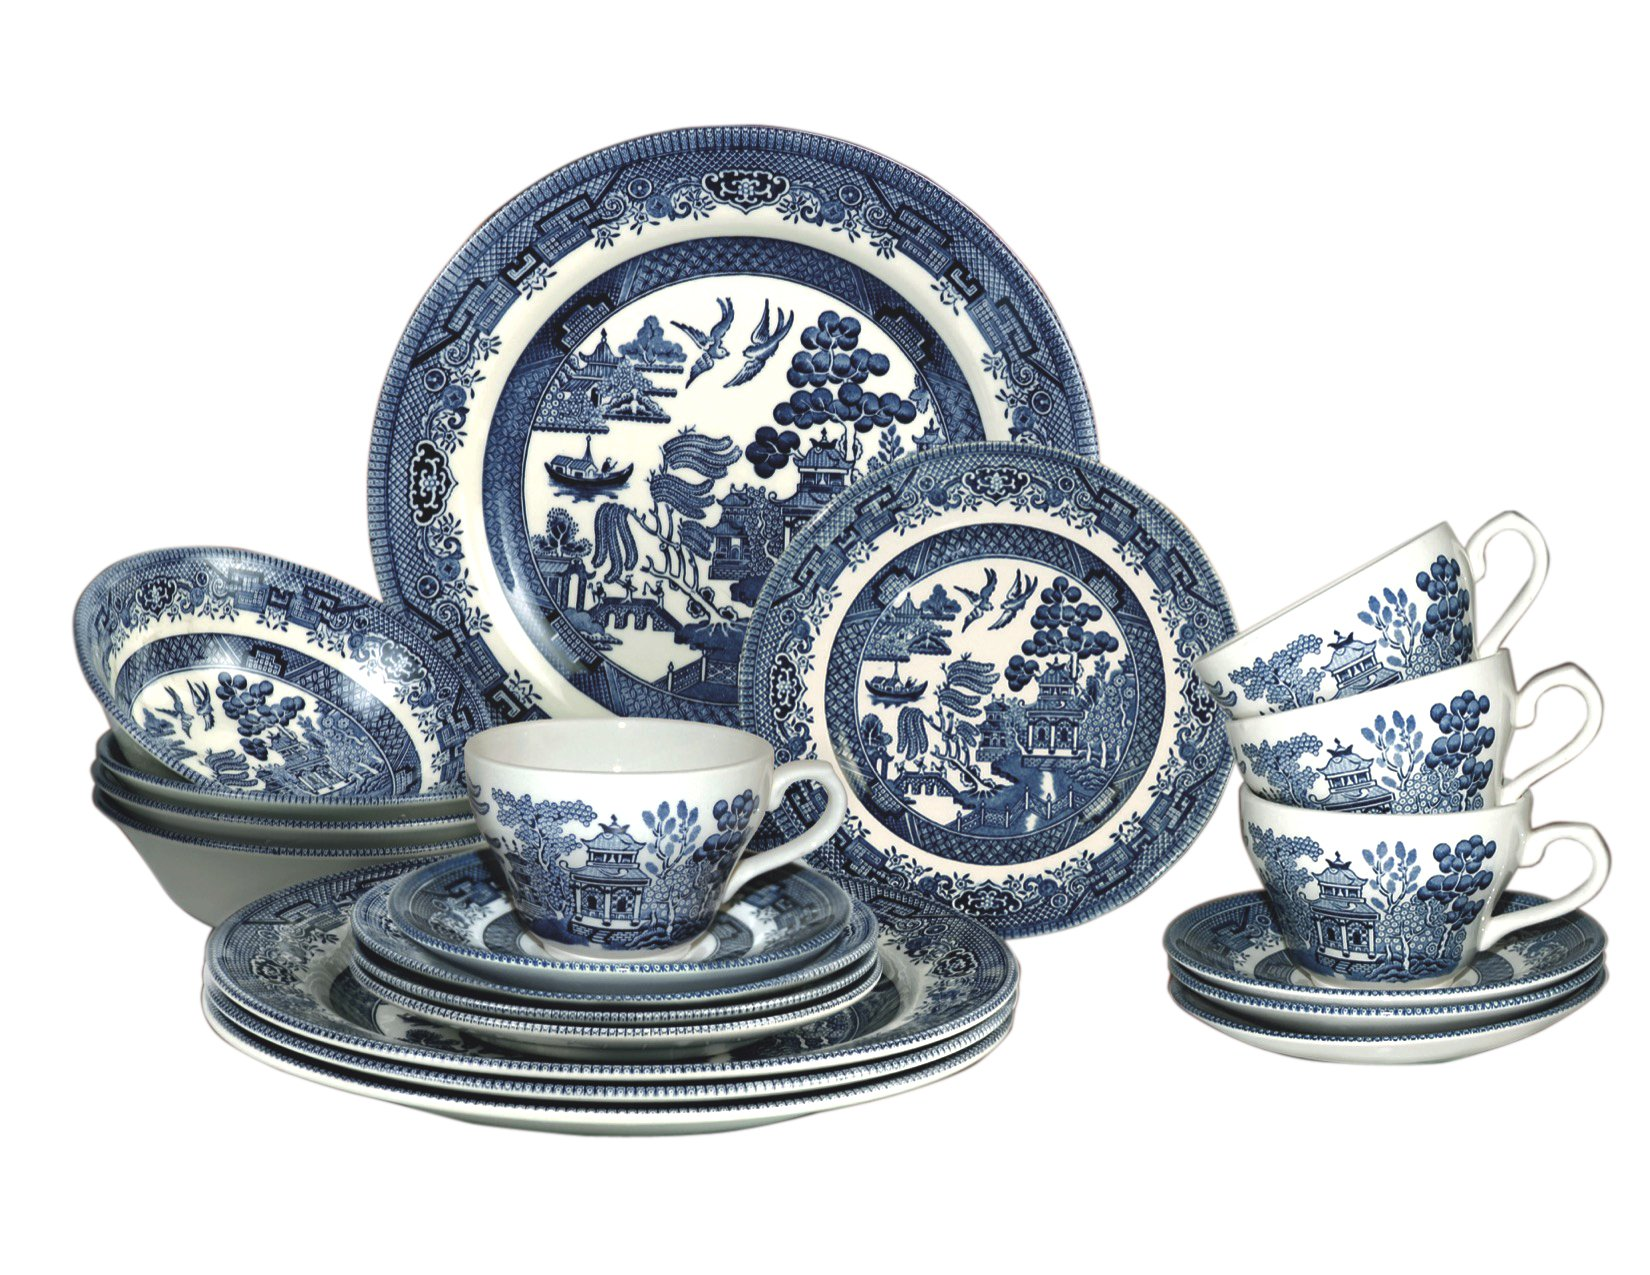 Churchill Blue Willow Plates Bowls Cups 20 Piece Dinnerware Set, Made In England by Churchill